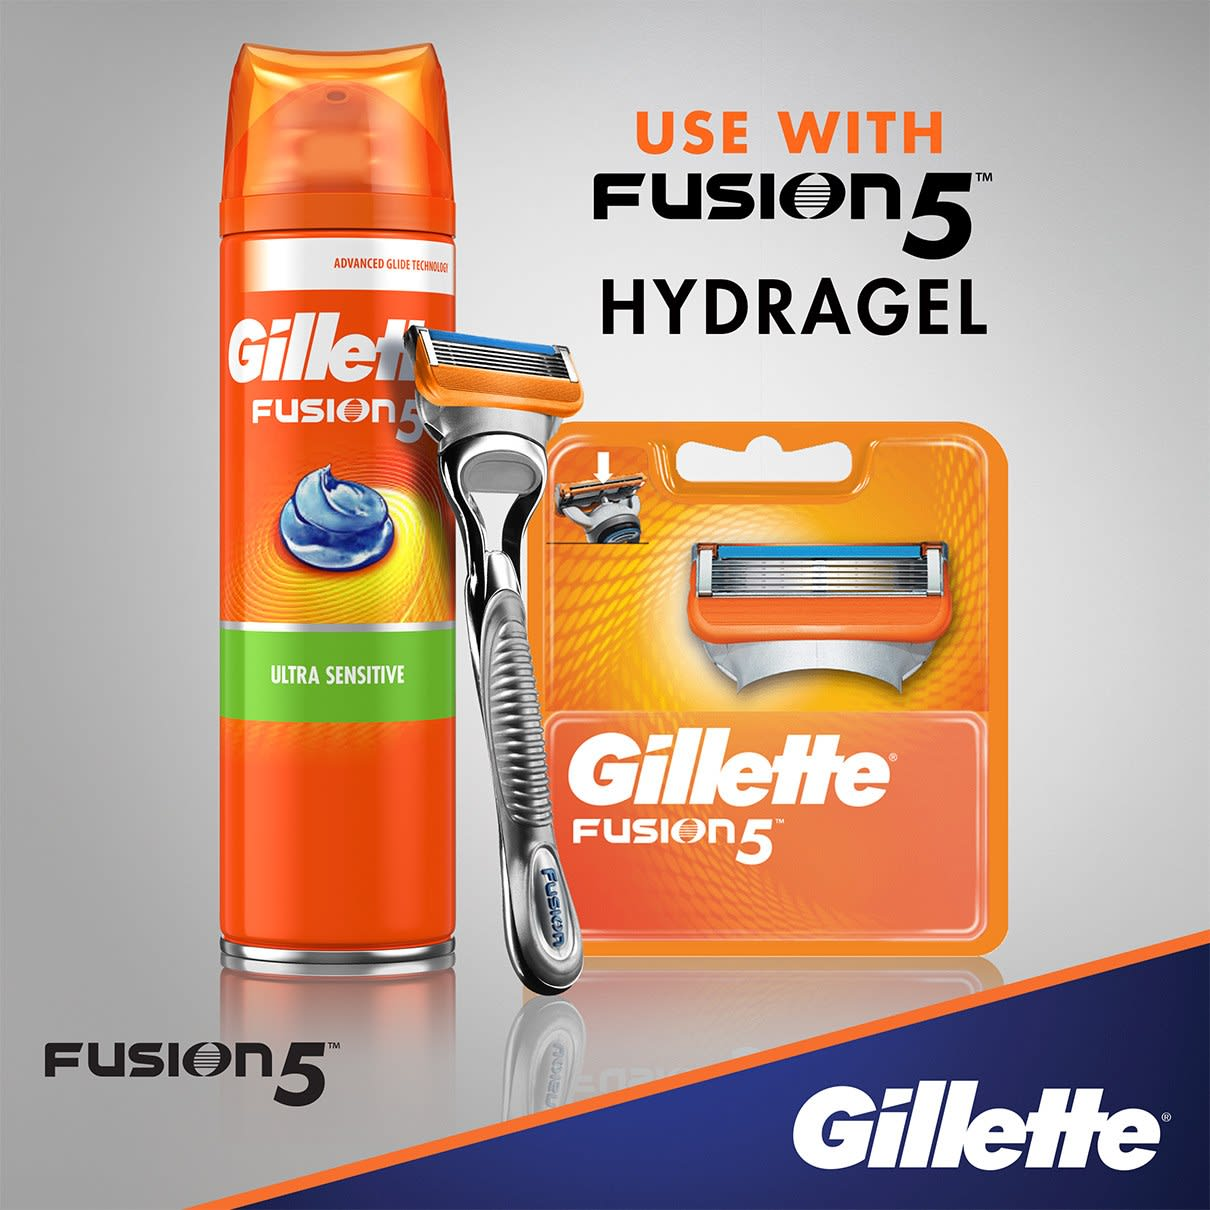 Use with Fusion5 Hydragel